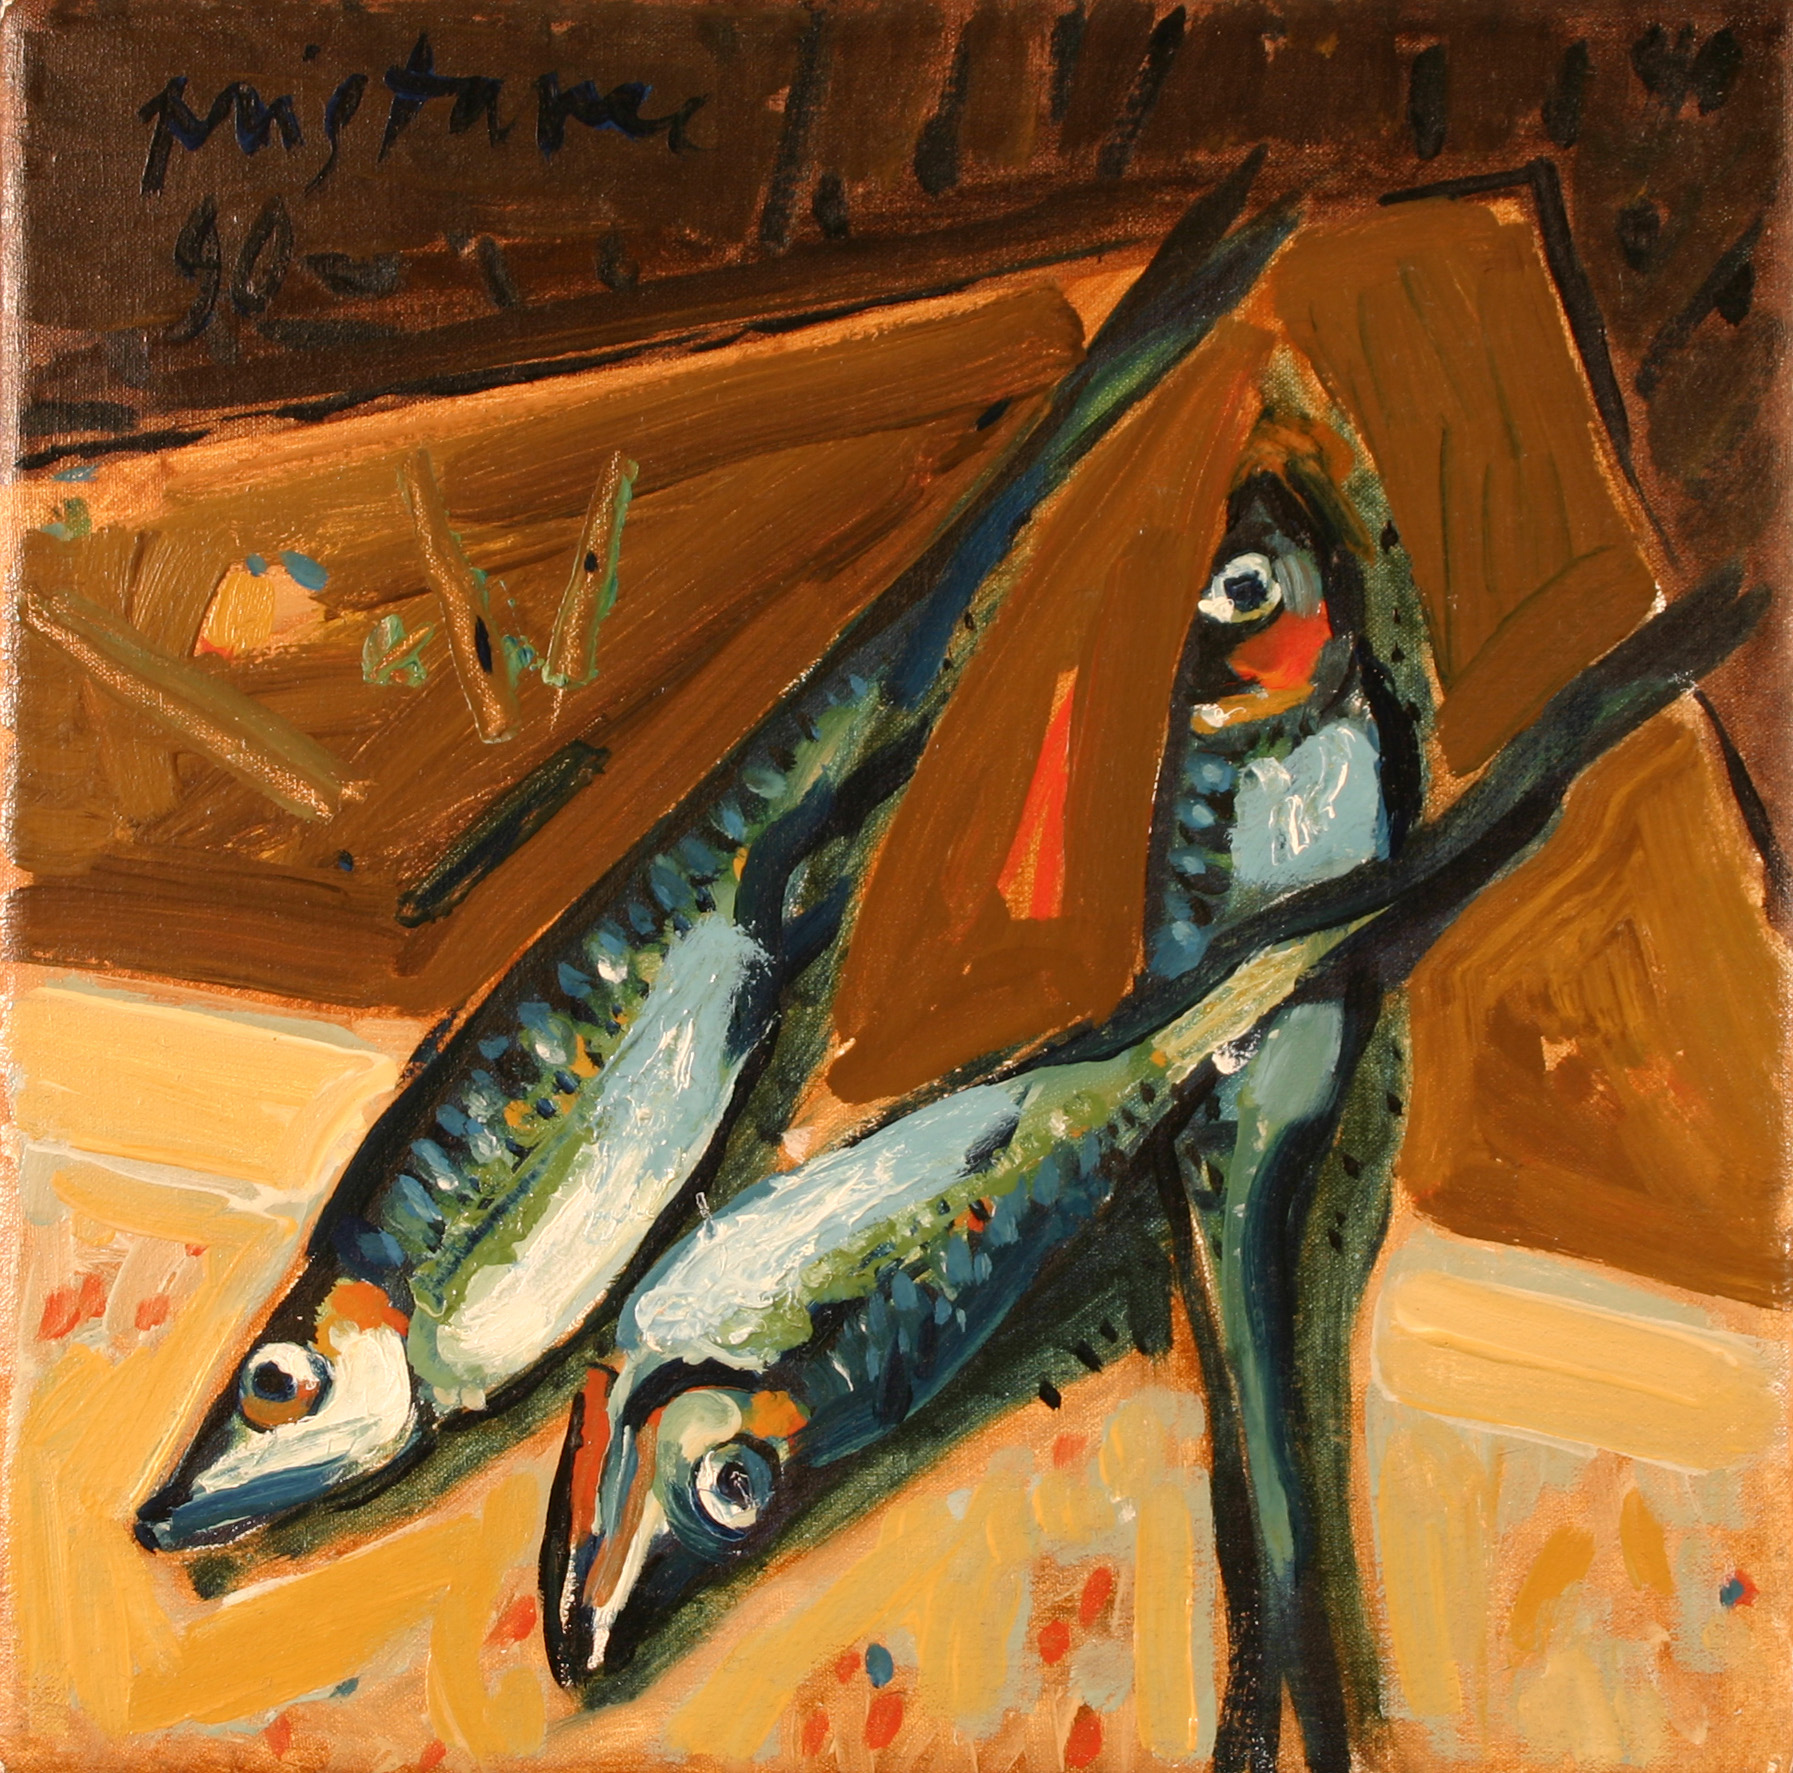 Fishes on Table  / 1996 / oil on canvas / 30 x 30 cm